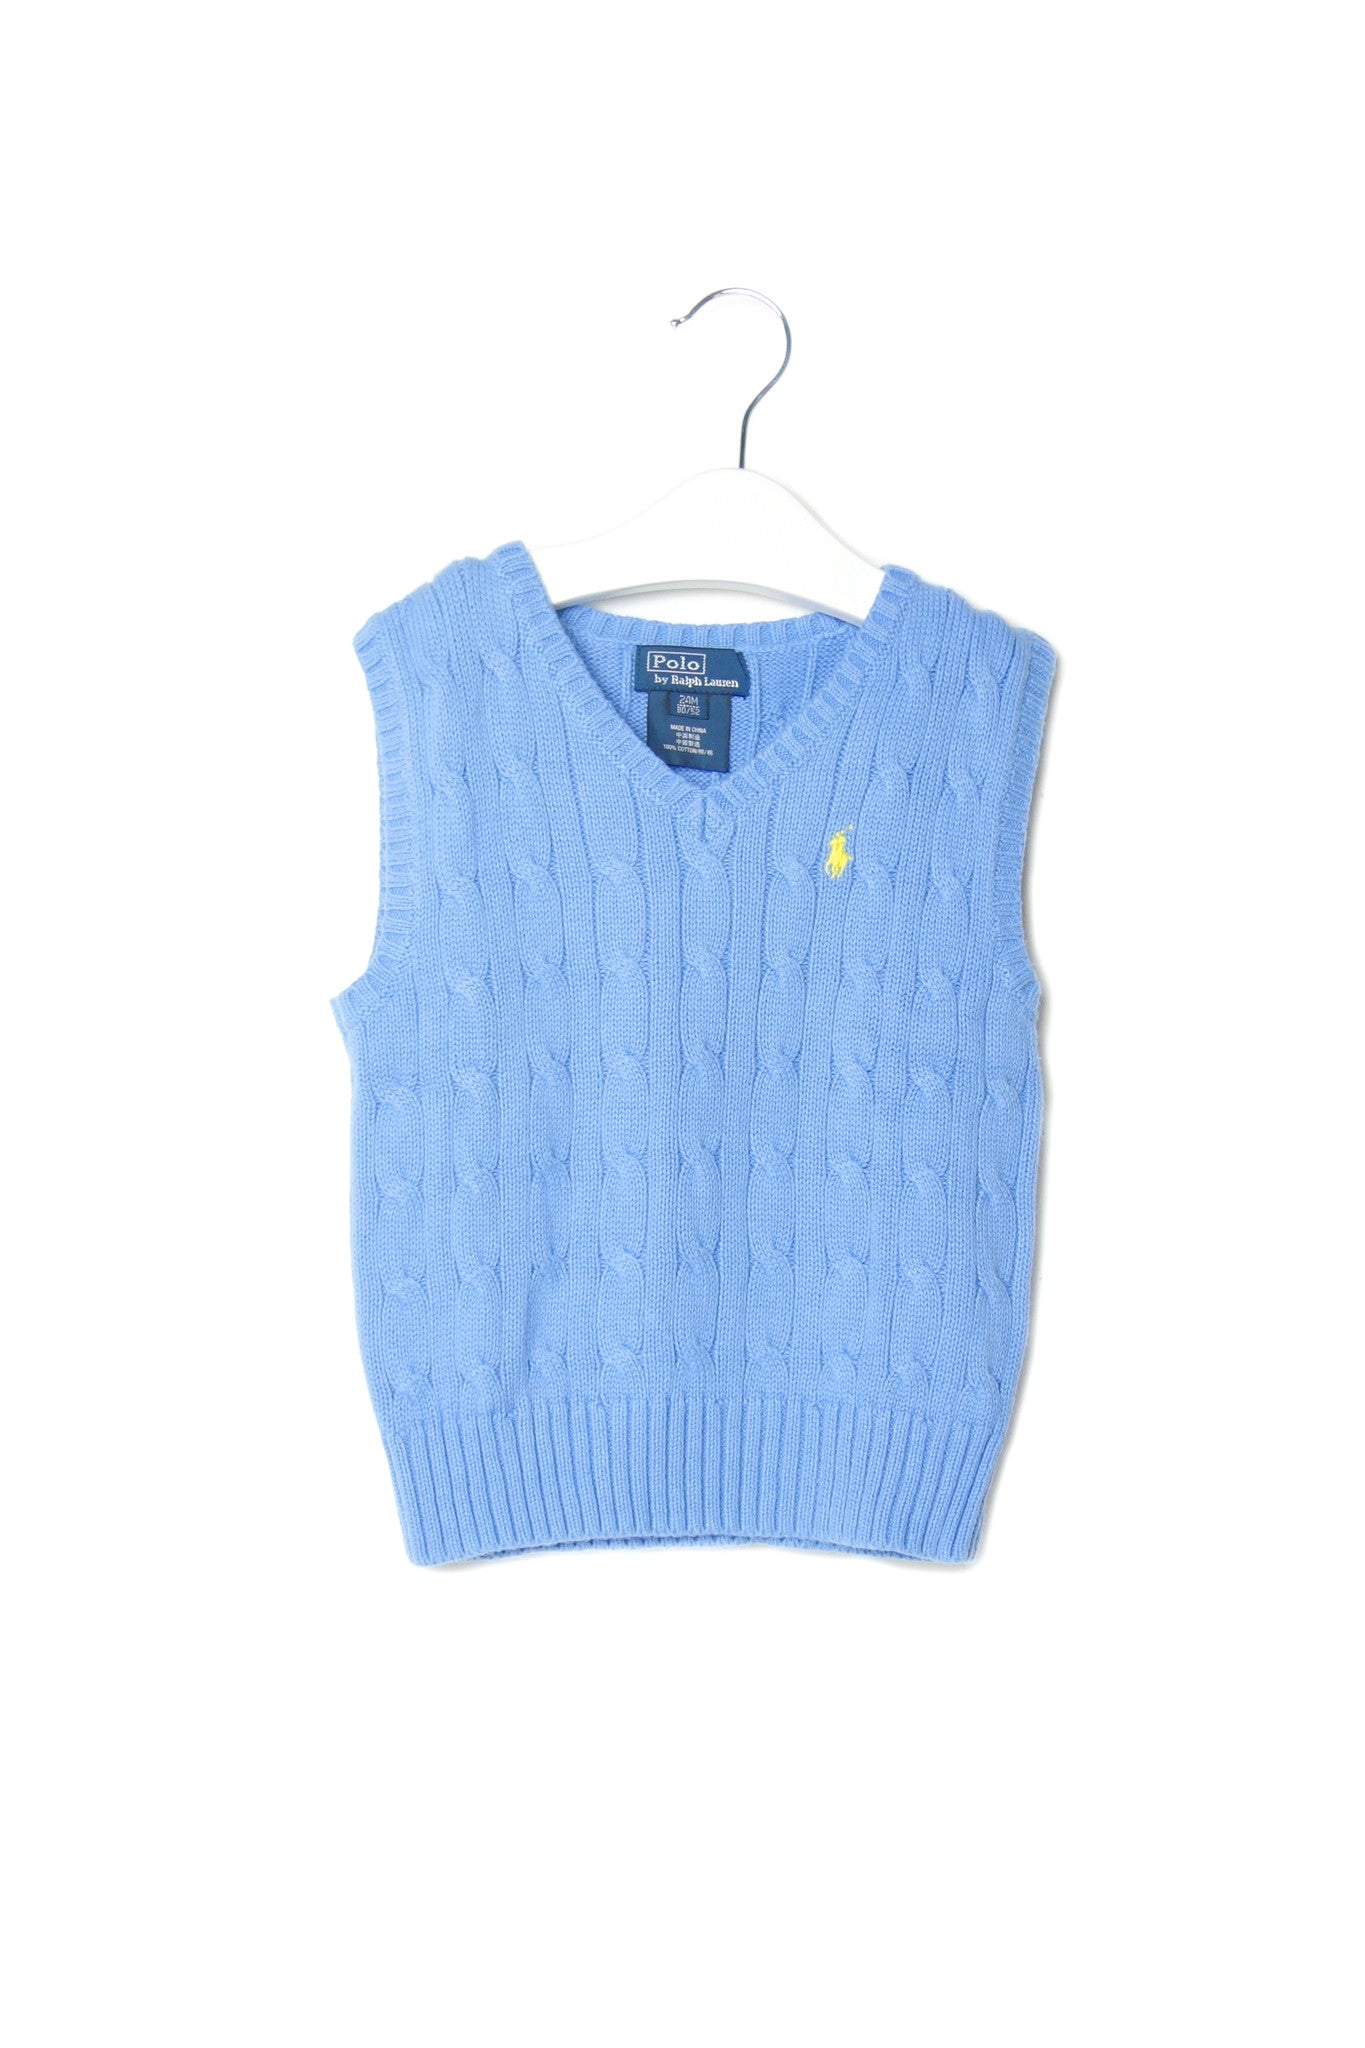 10002001 Polo Ralph Lauren Kids~Sweater 2T at Retykle